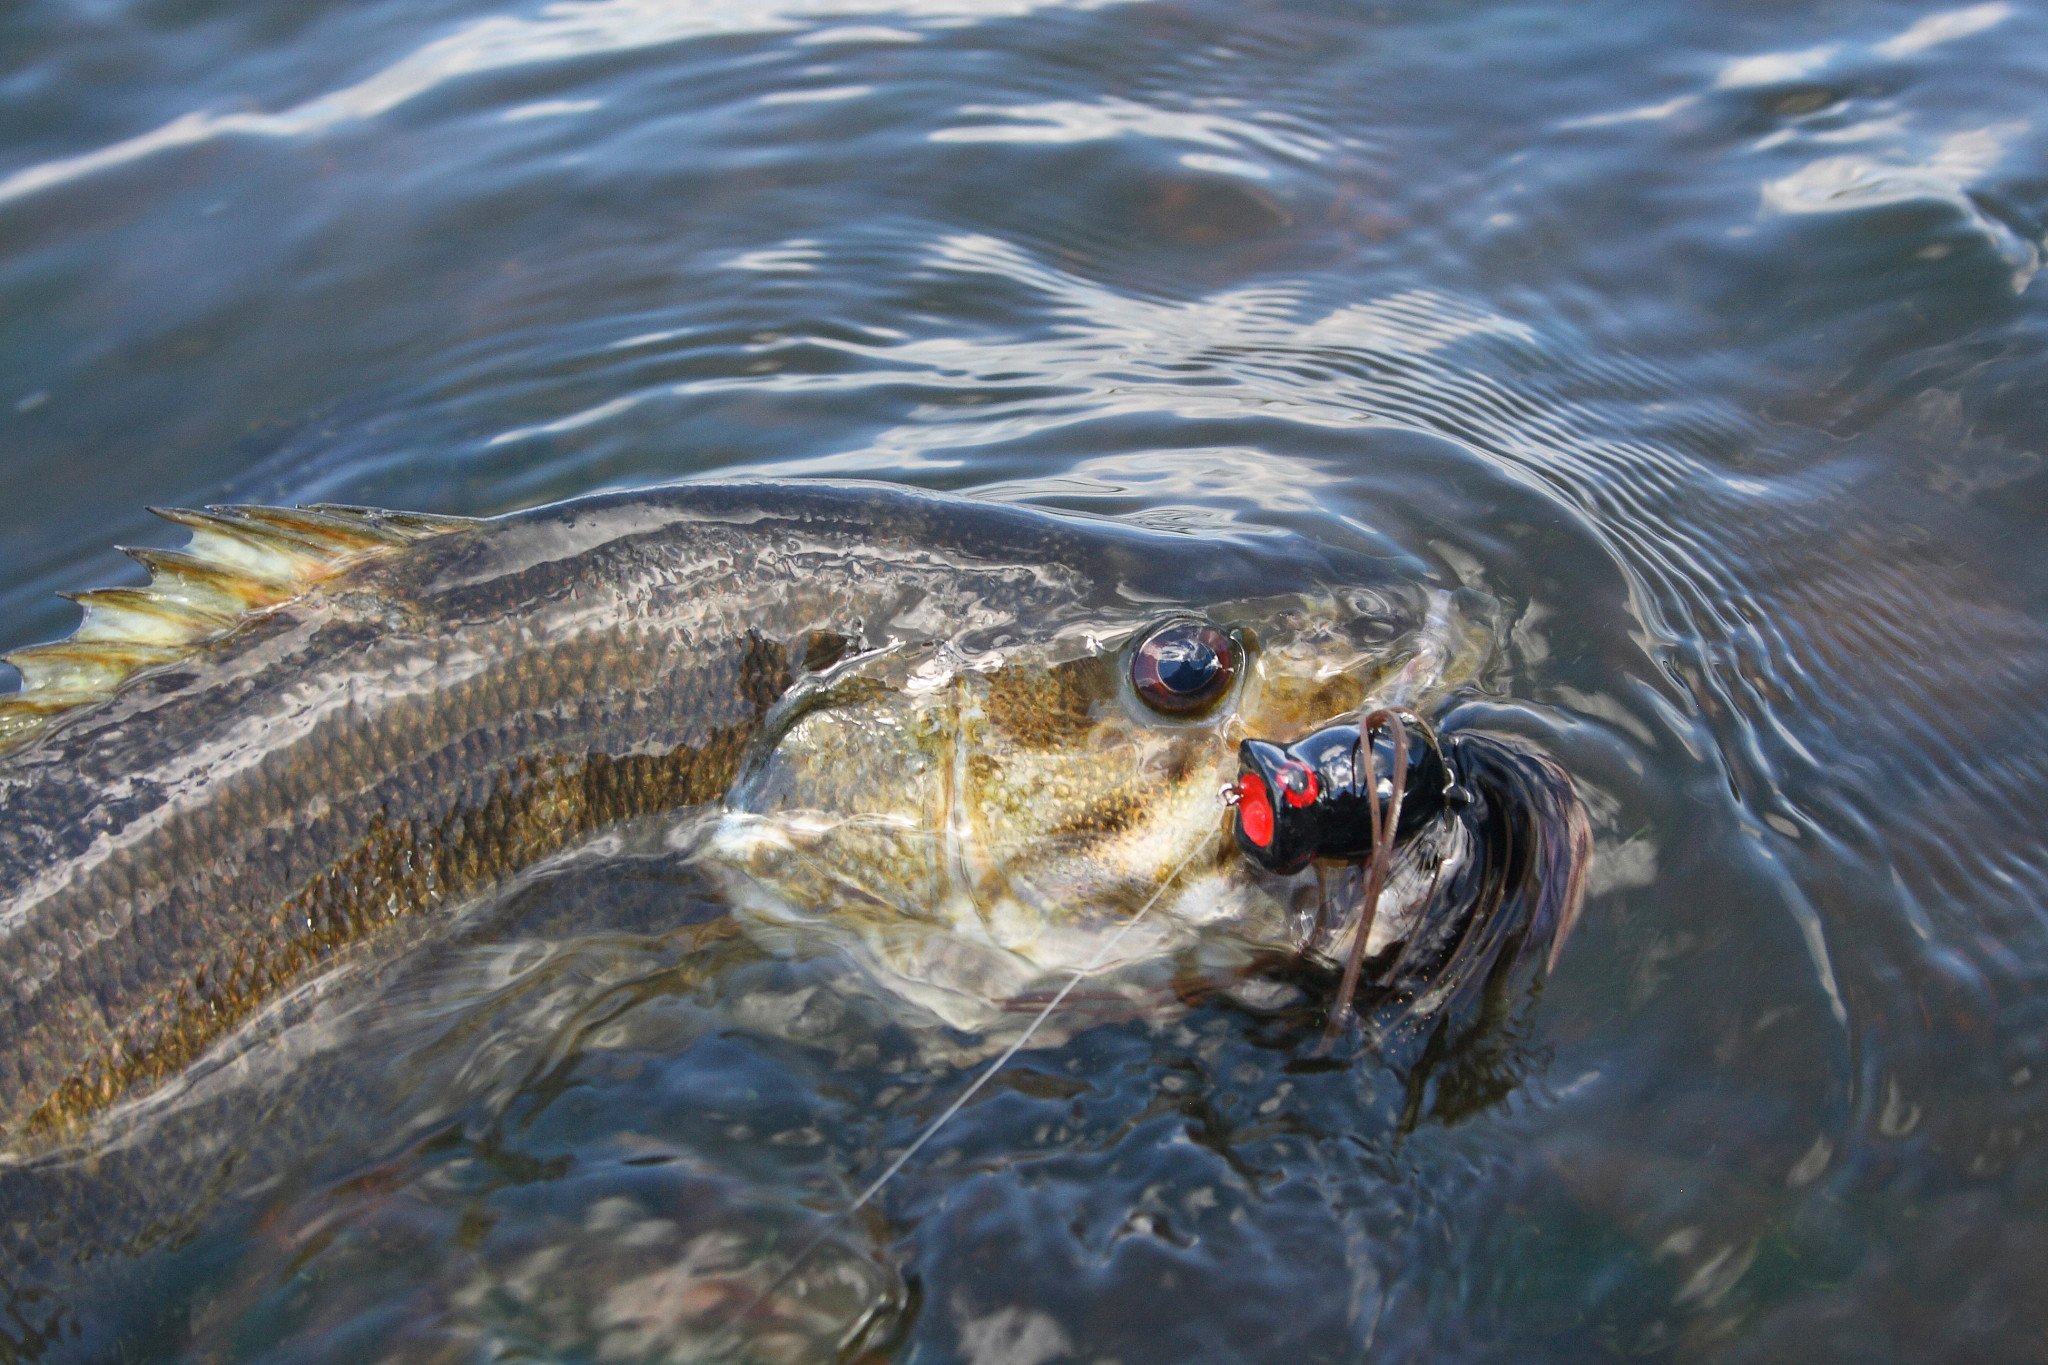 A smallmouth bass in the water.